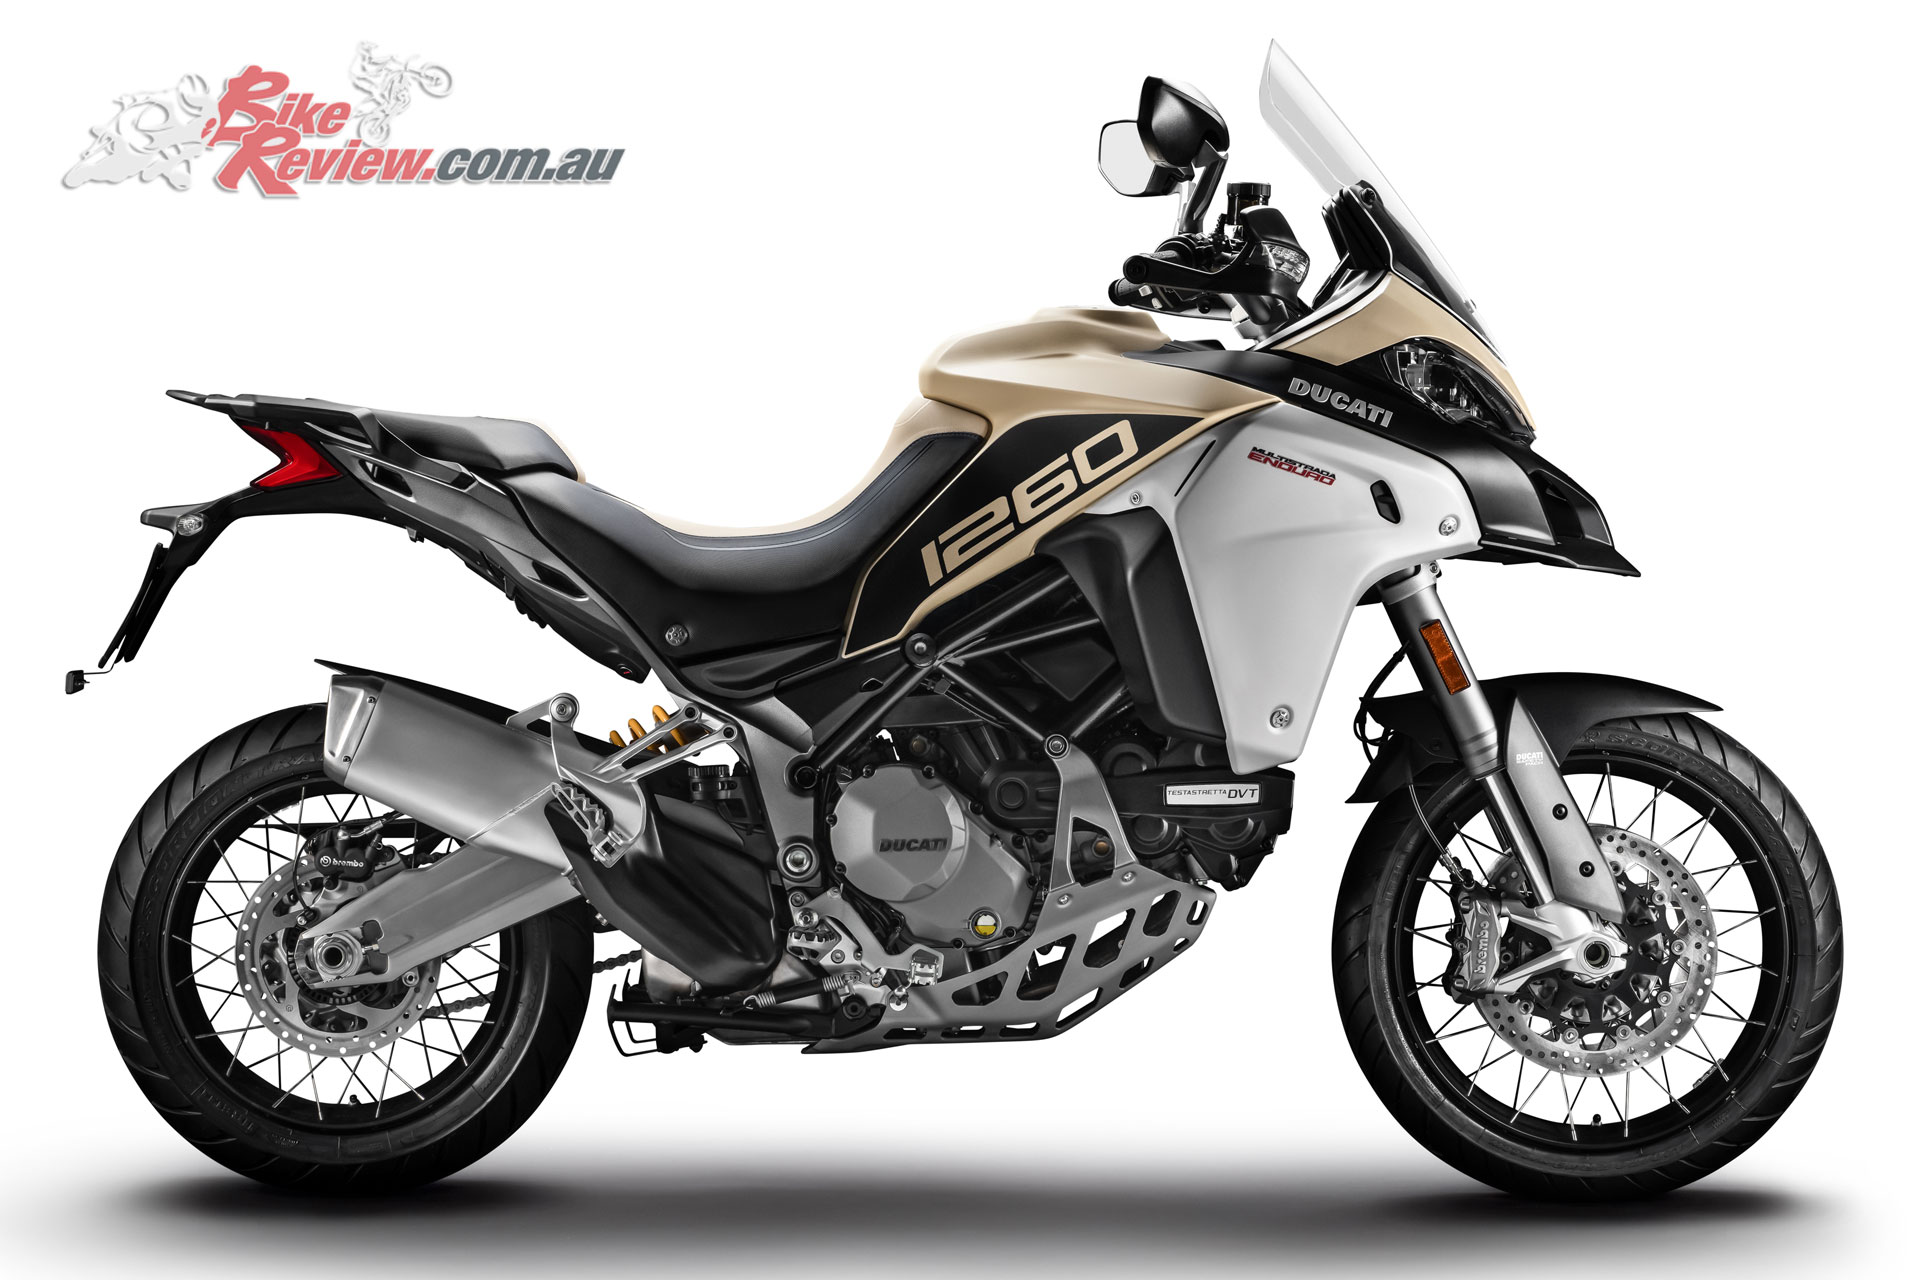 2019 Ducati Multistrada 1260 Enduro in Sand colour option